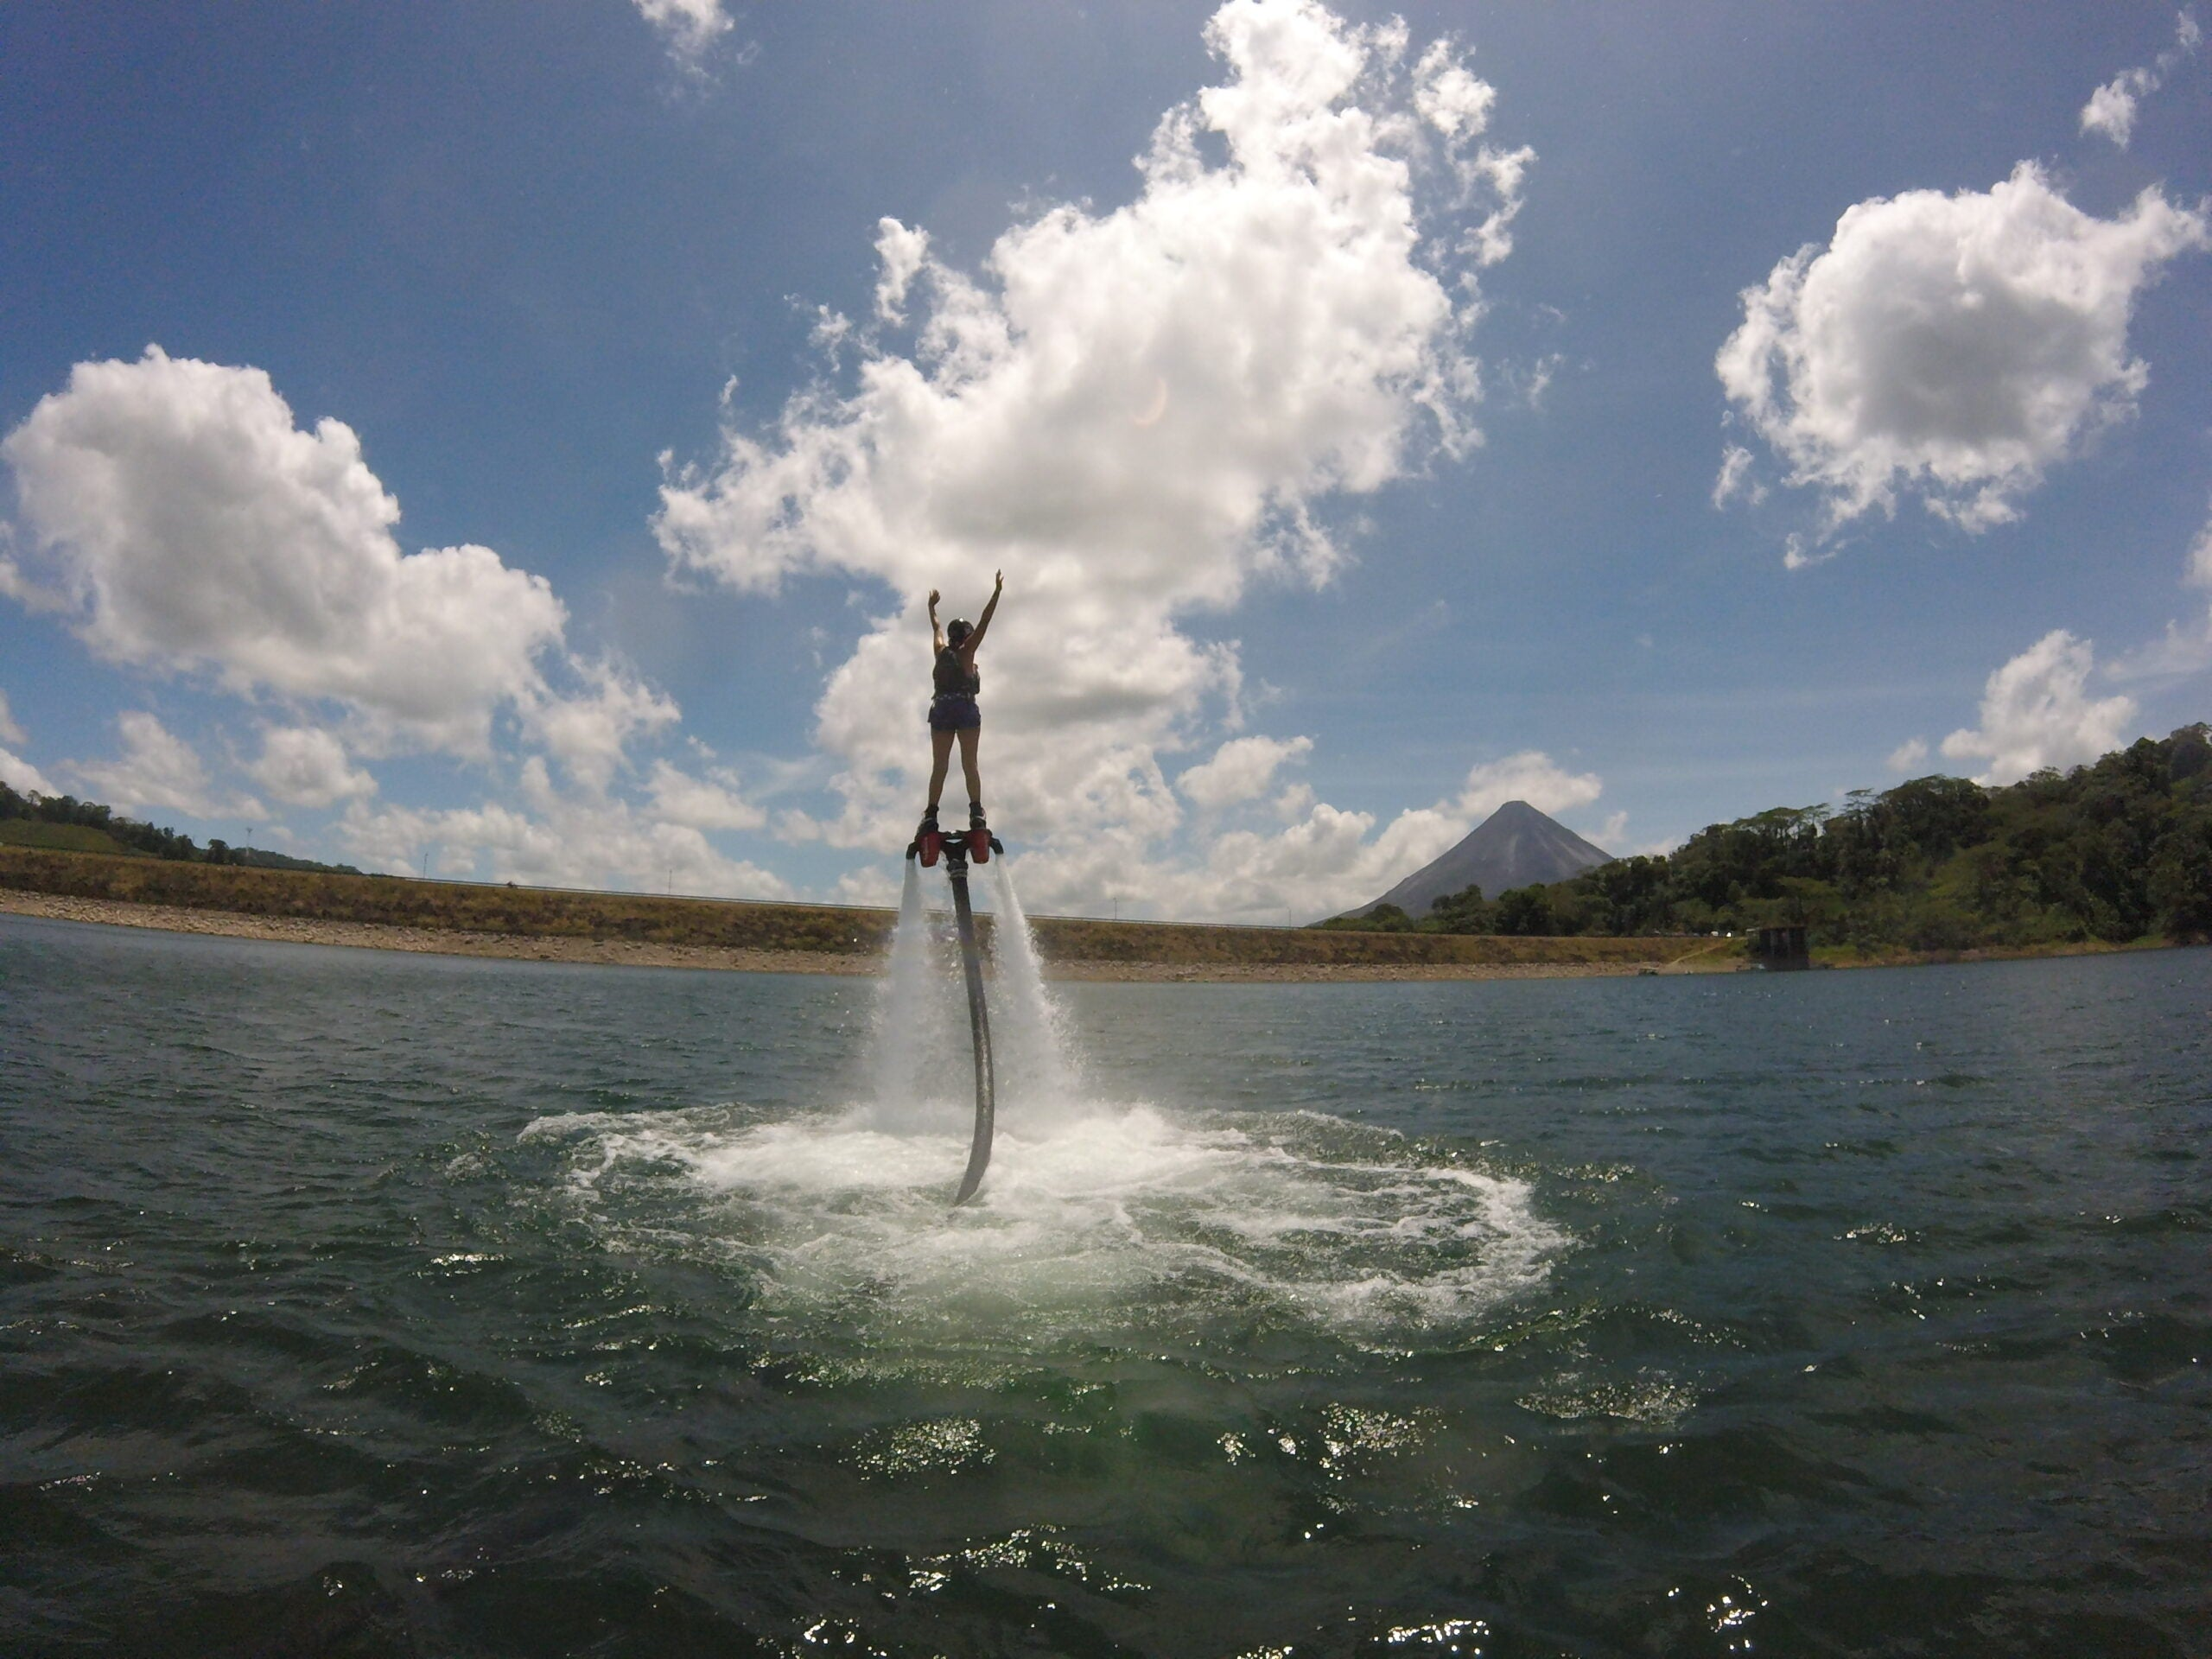 A Beginner's Guide To Flyboarding